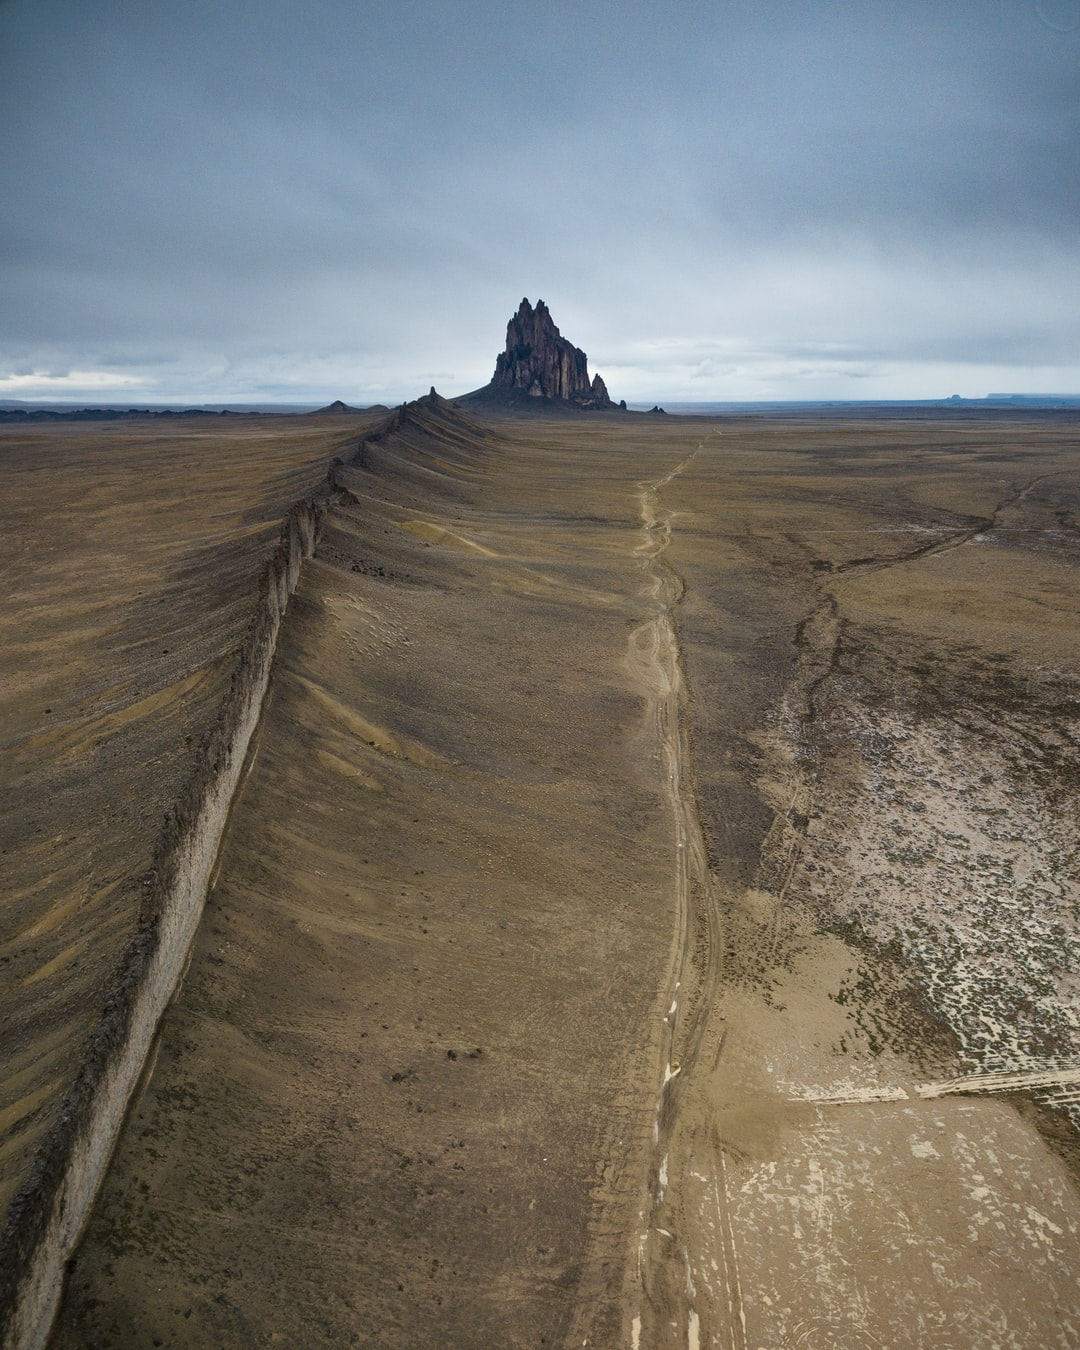 On a road trip through the American Southwest; I stopped by Shiprock, New Mexico for this beautiful sight.